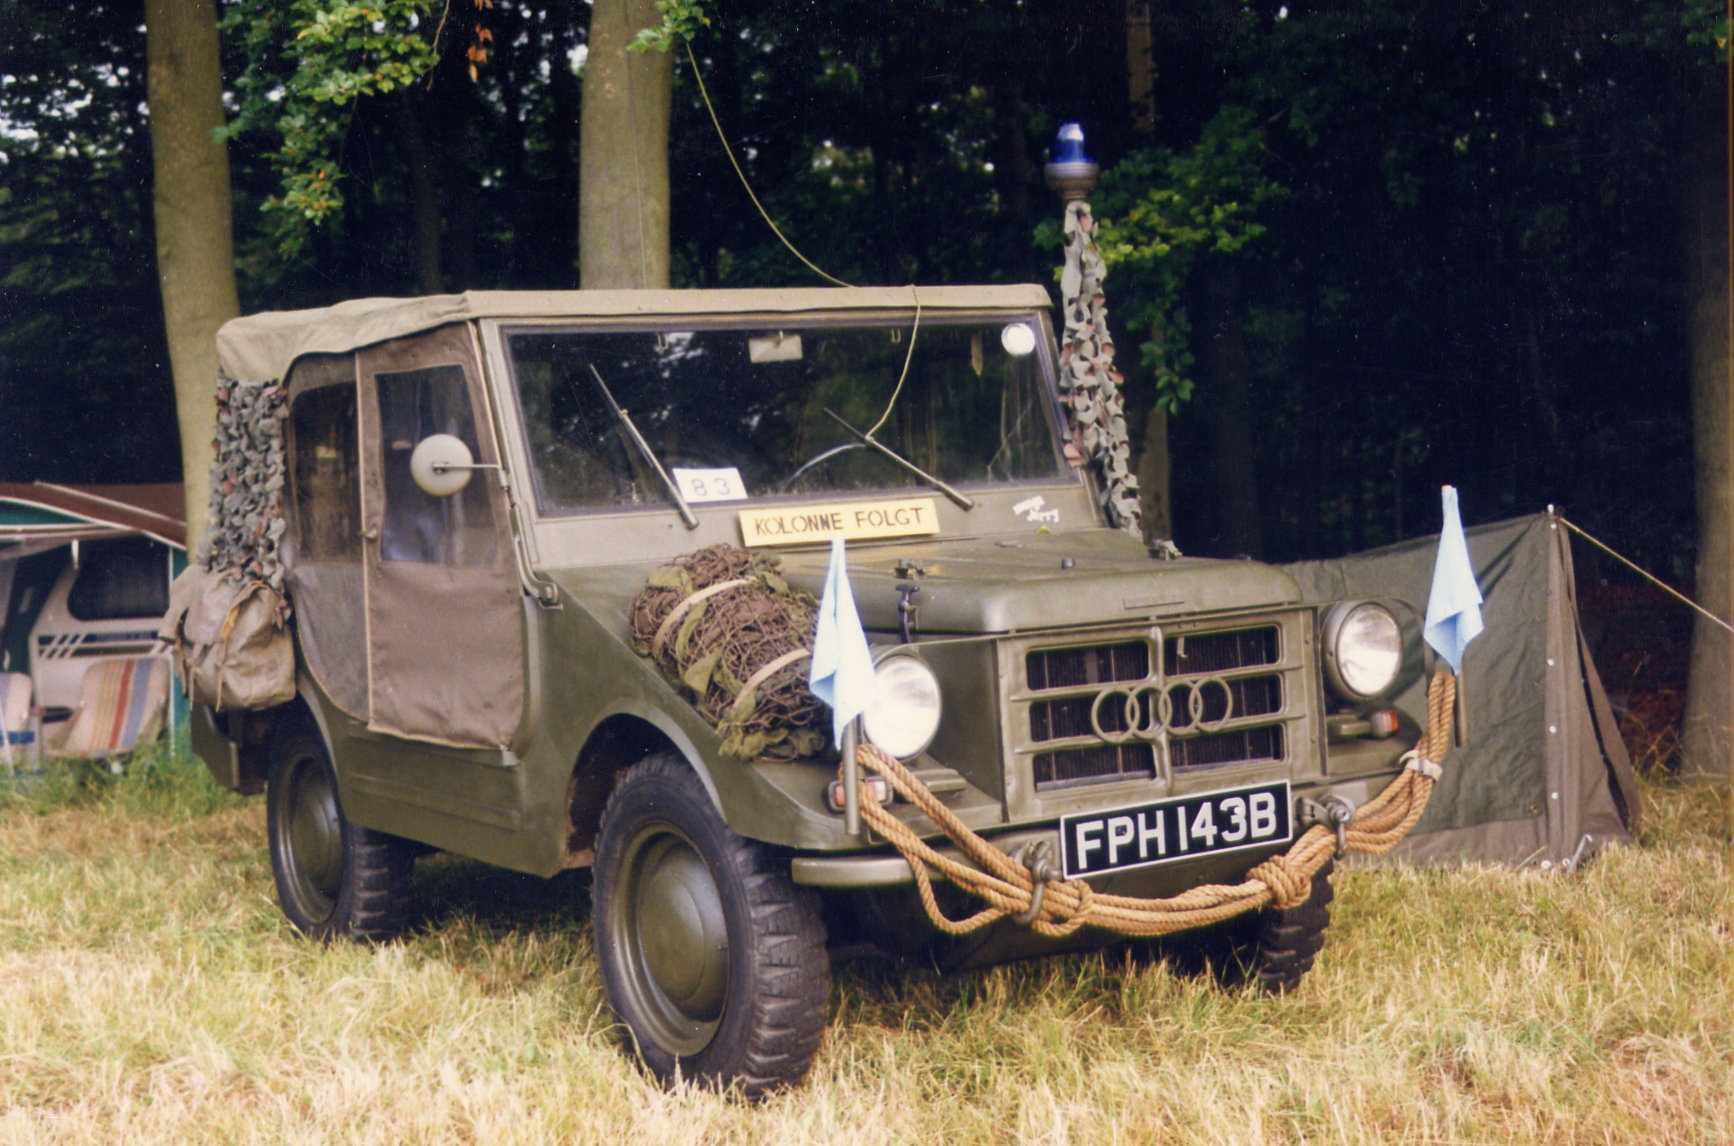 DKW Munga 4x4 Field Car (FPH